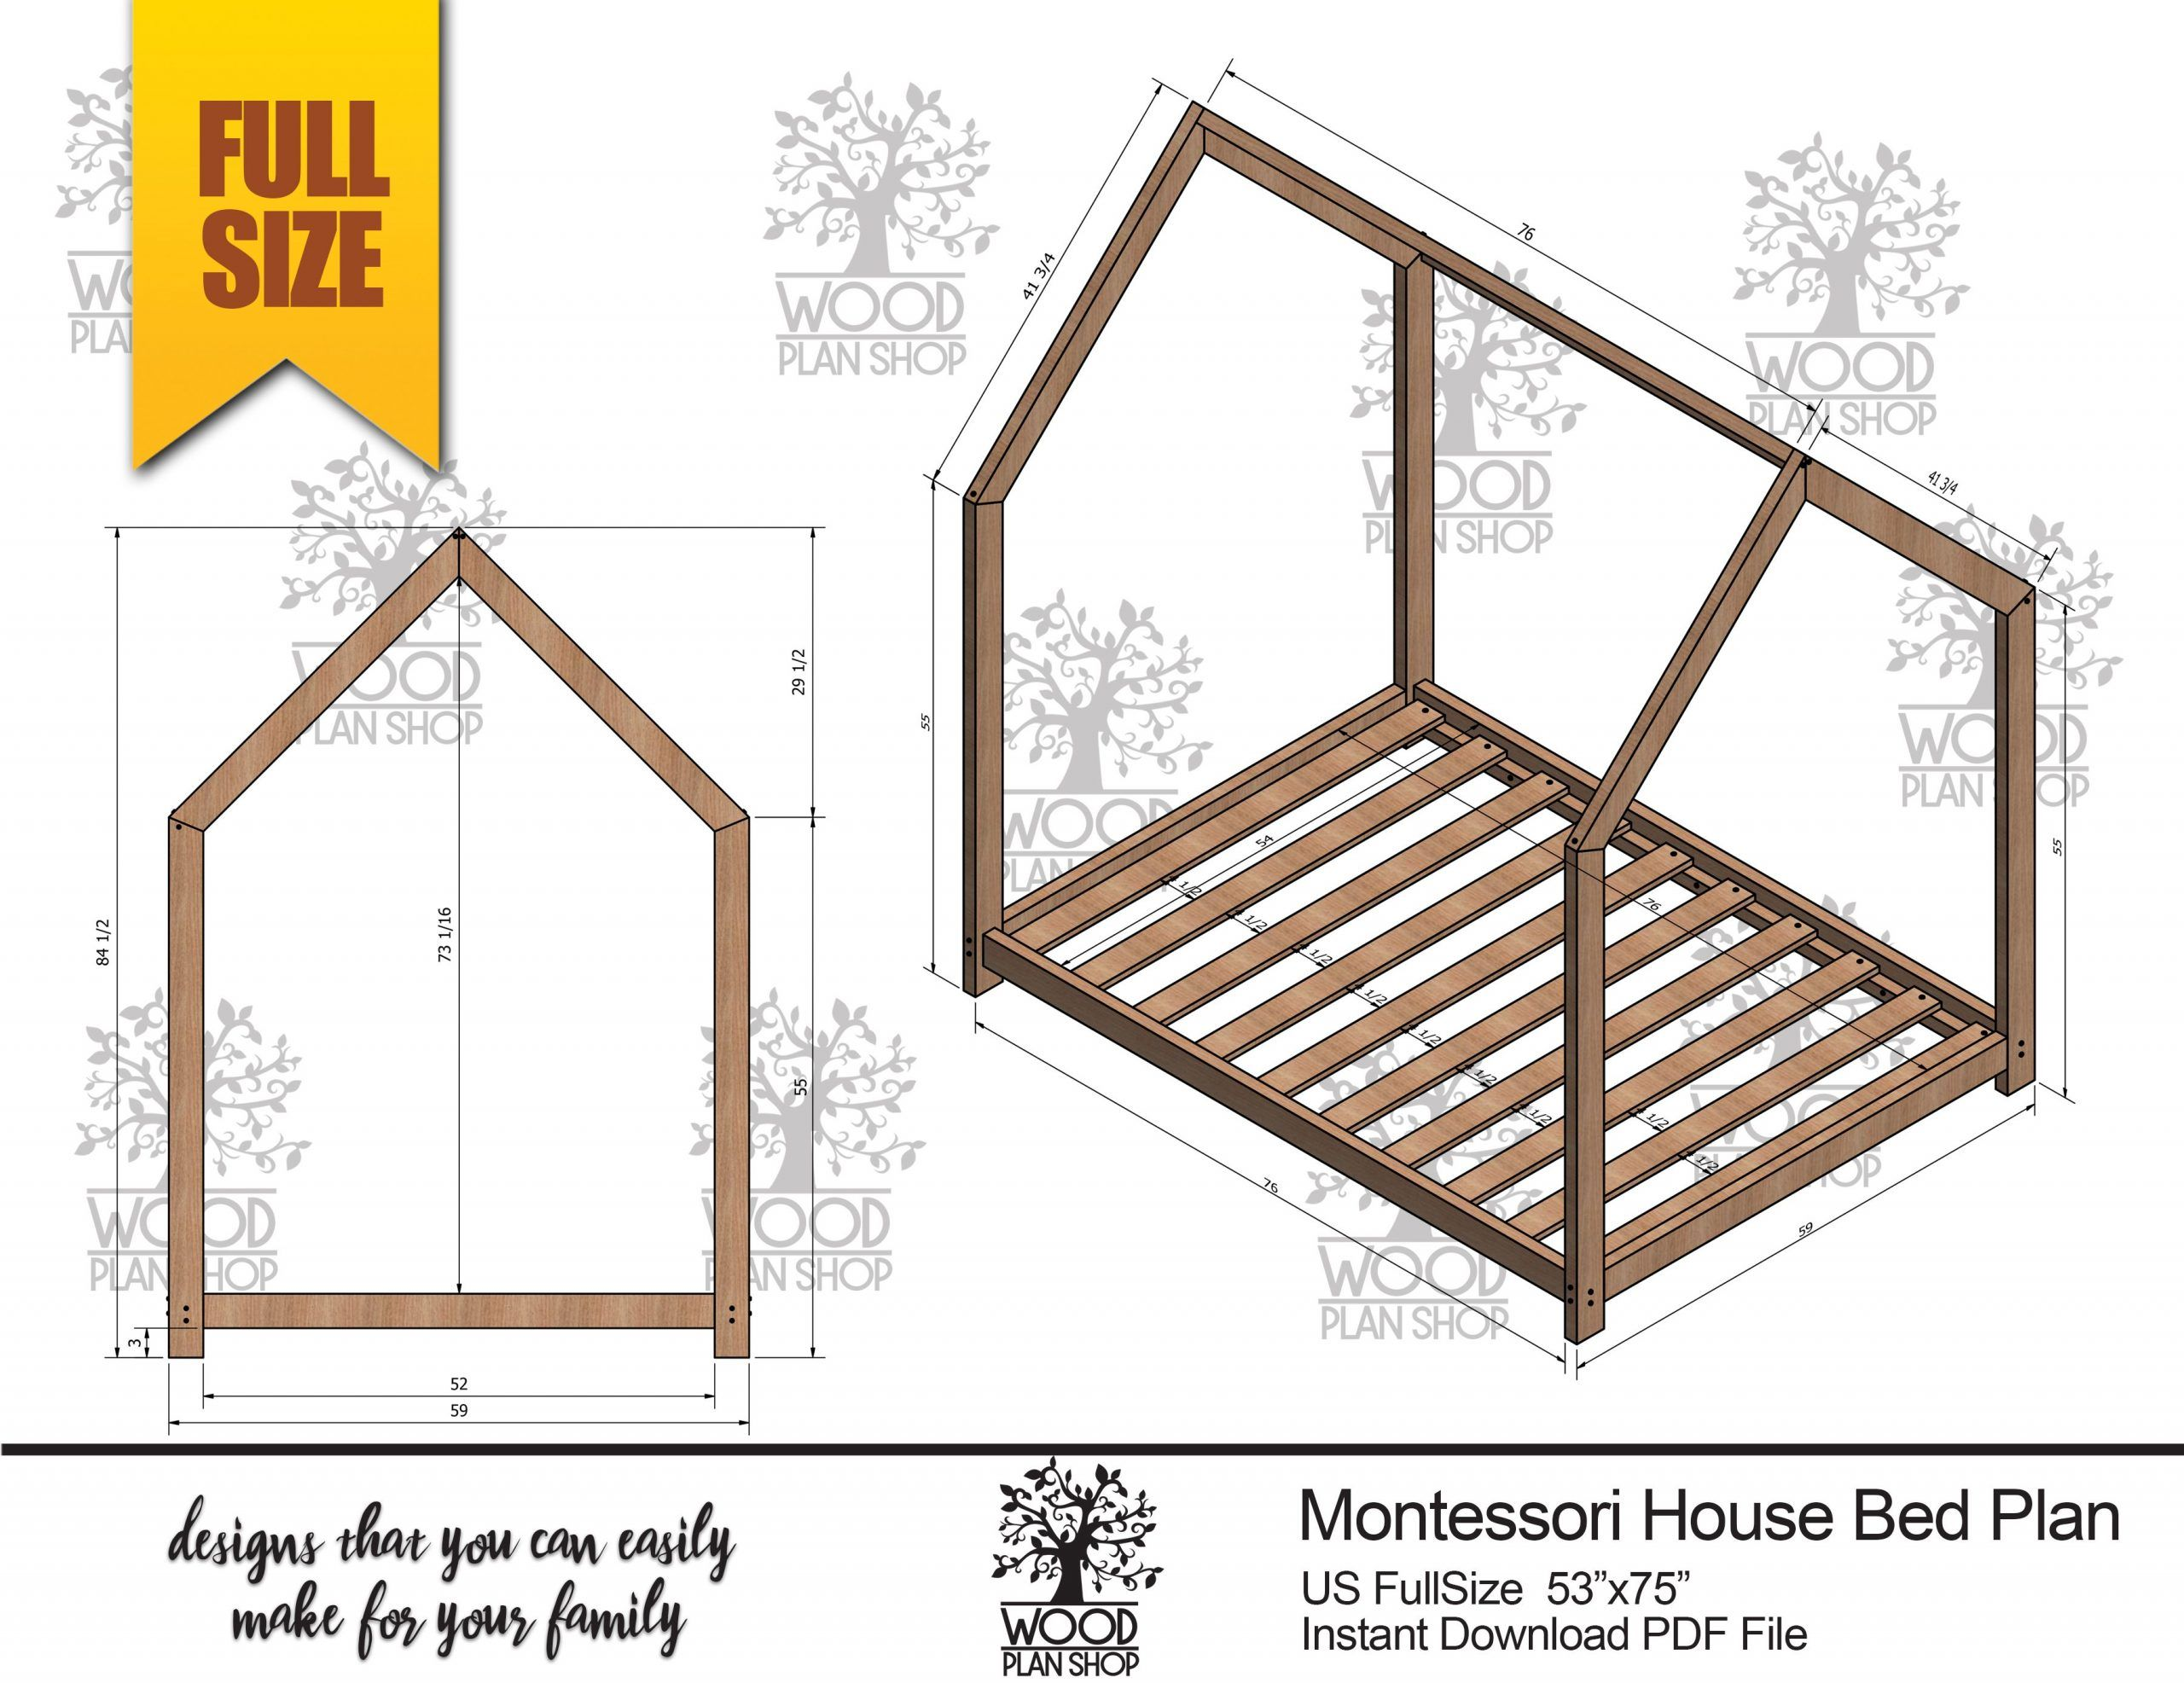 Full Size House Bed Frame Made In Us House Frame Bed House Beds